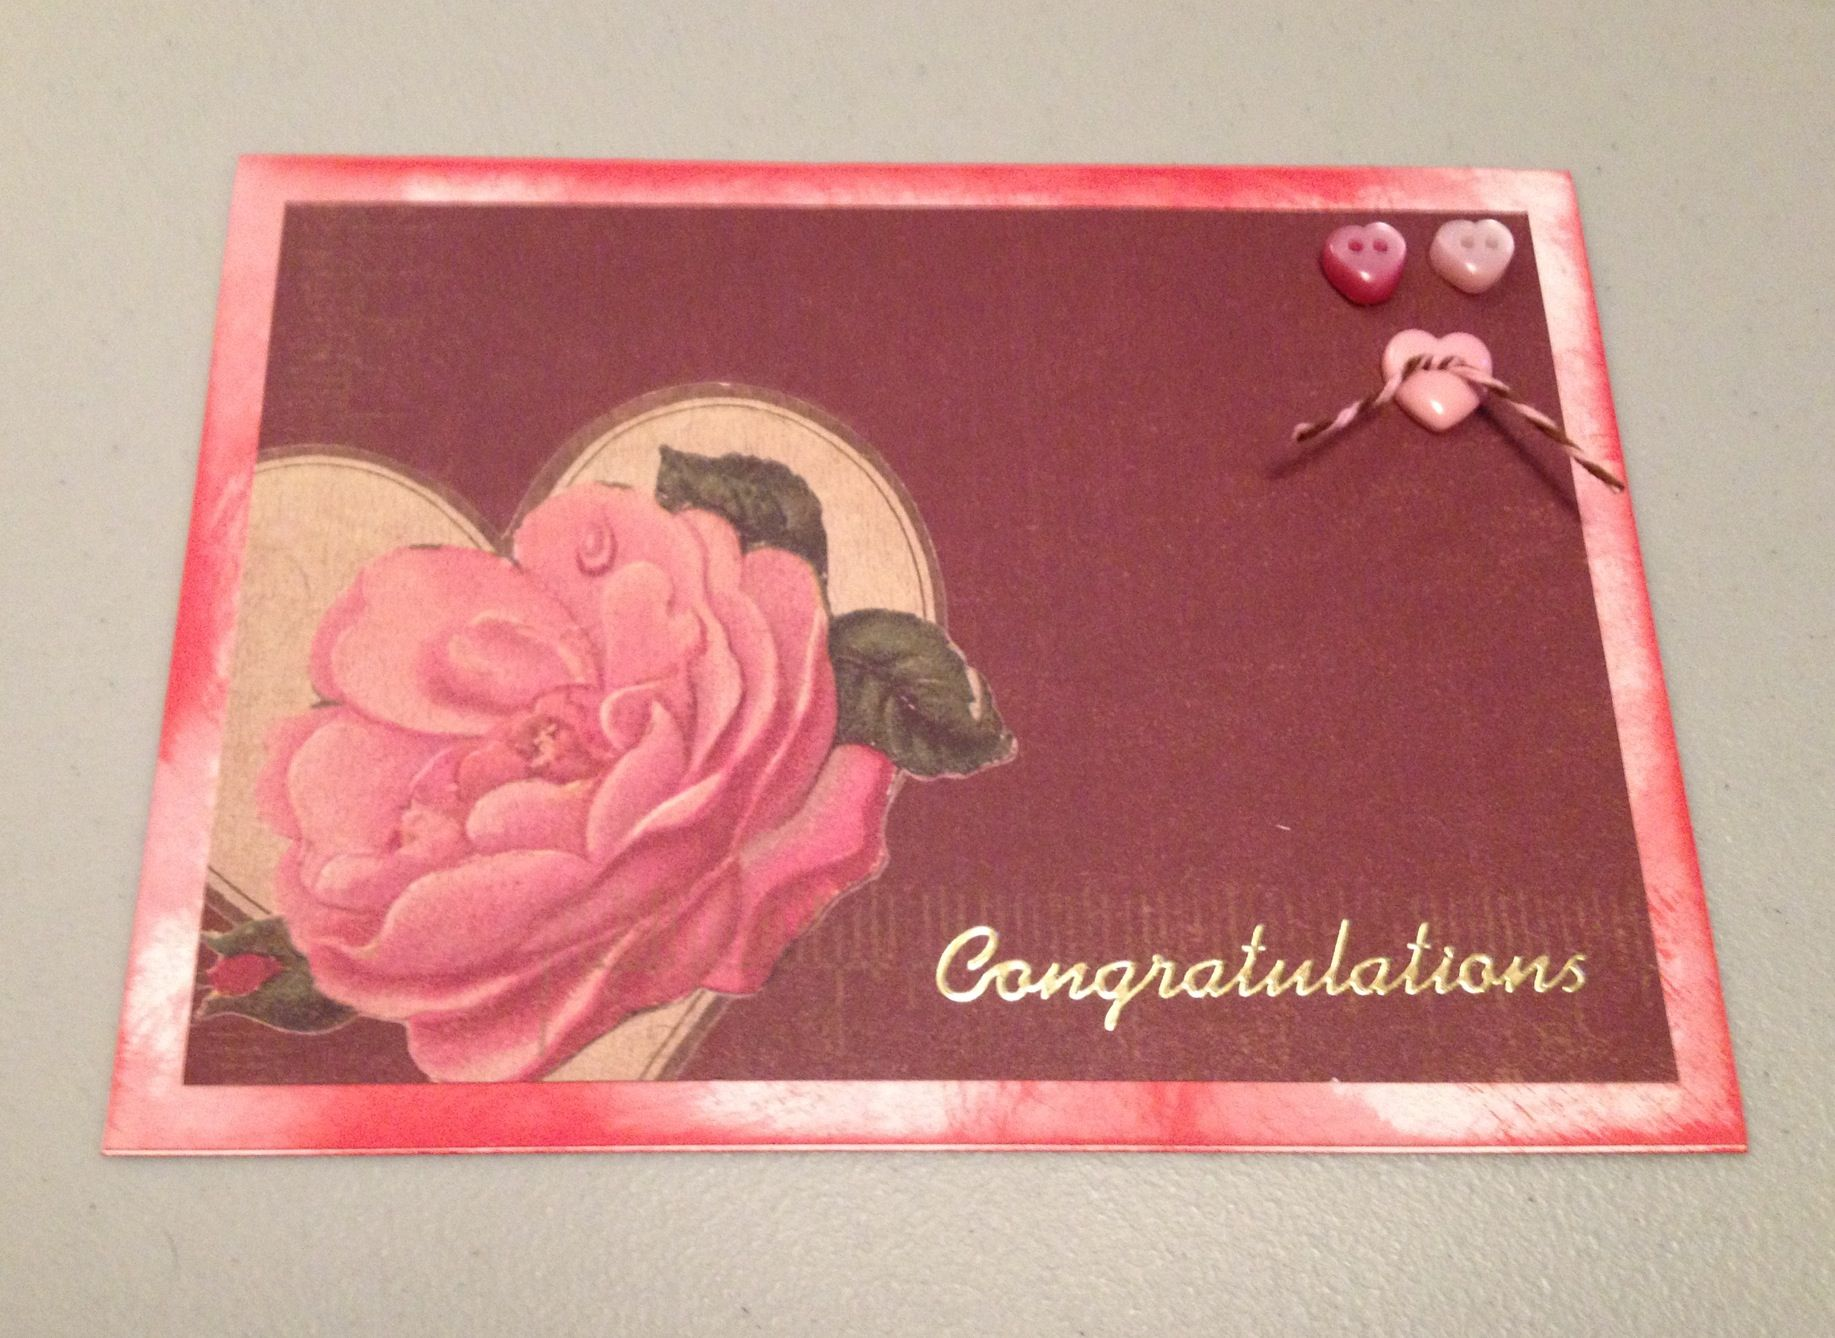 A congratulations on your retirement card for my friend Linda.